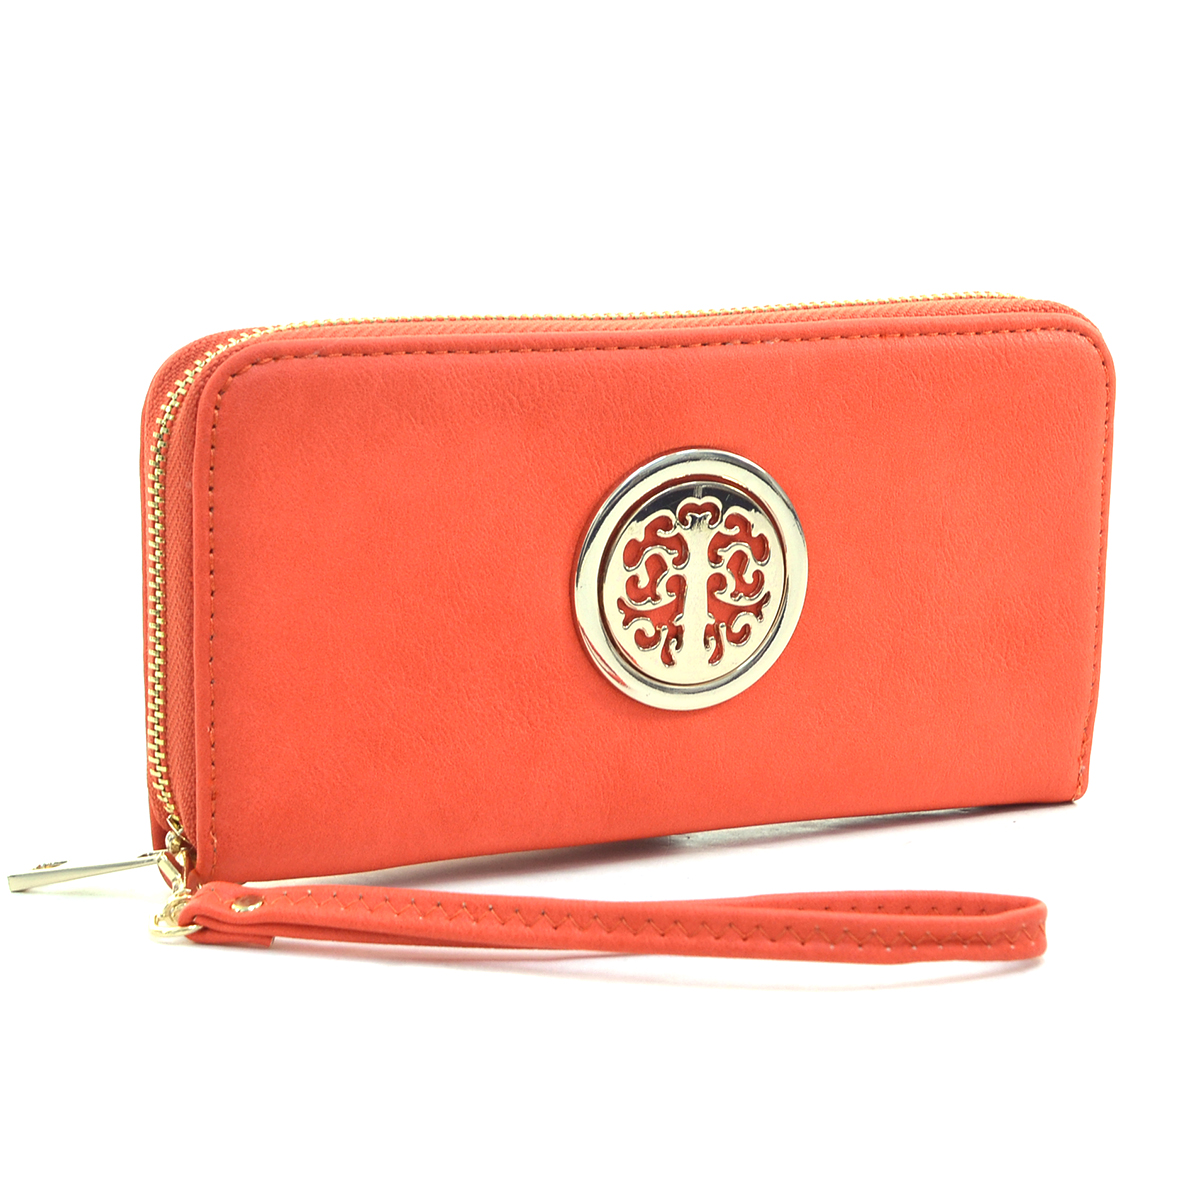 Emblem Embossed Zip Around Wallet